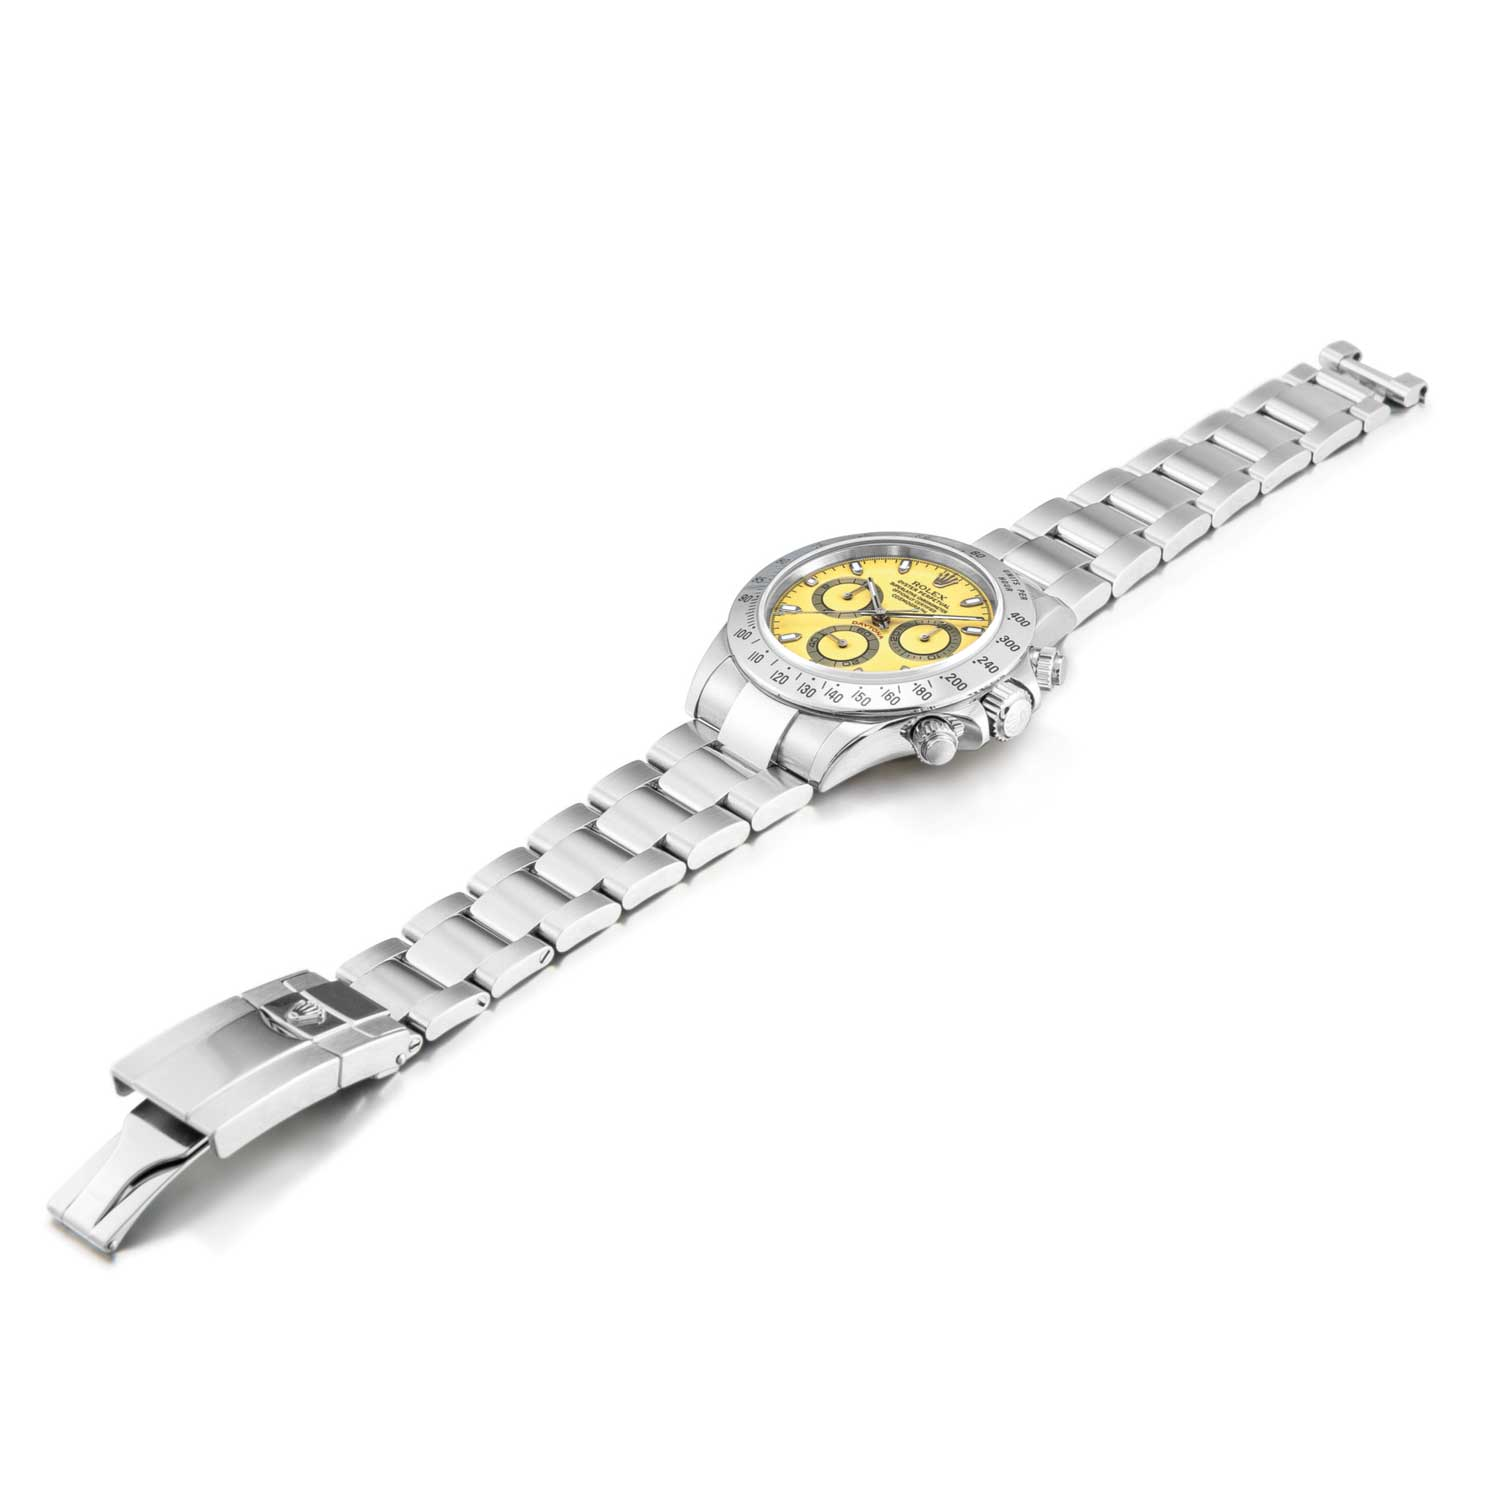 Rolex Cosmograph Daytona, Reference 116520 A Stainless Steel Chronograph Wristwatch With Citrus Dial And Bracelet, Circa 2000